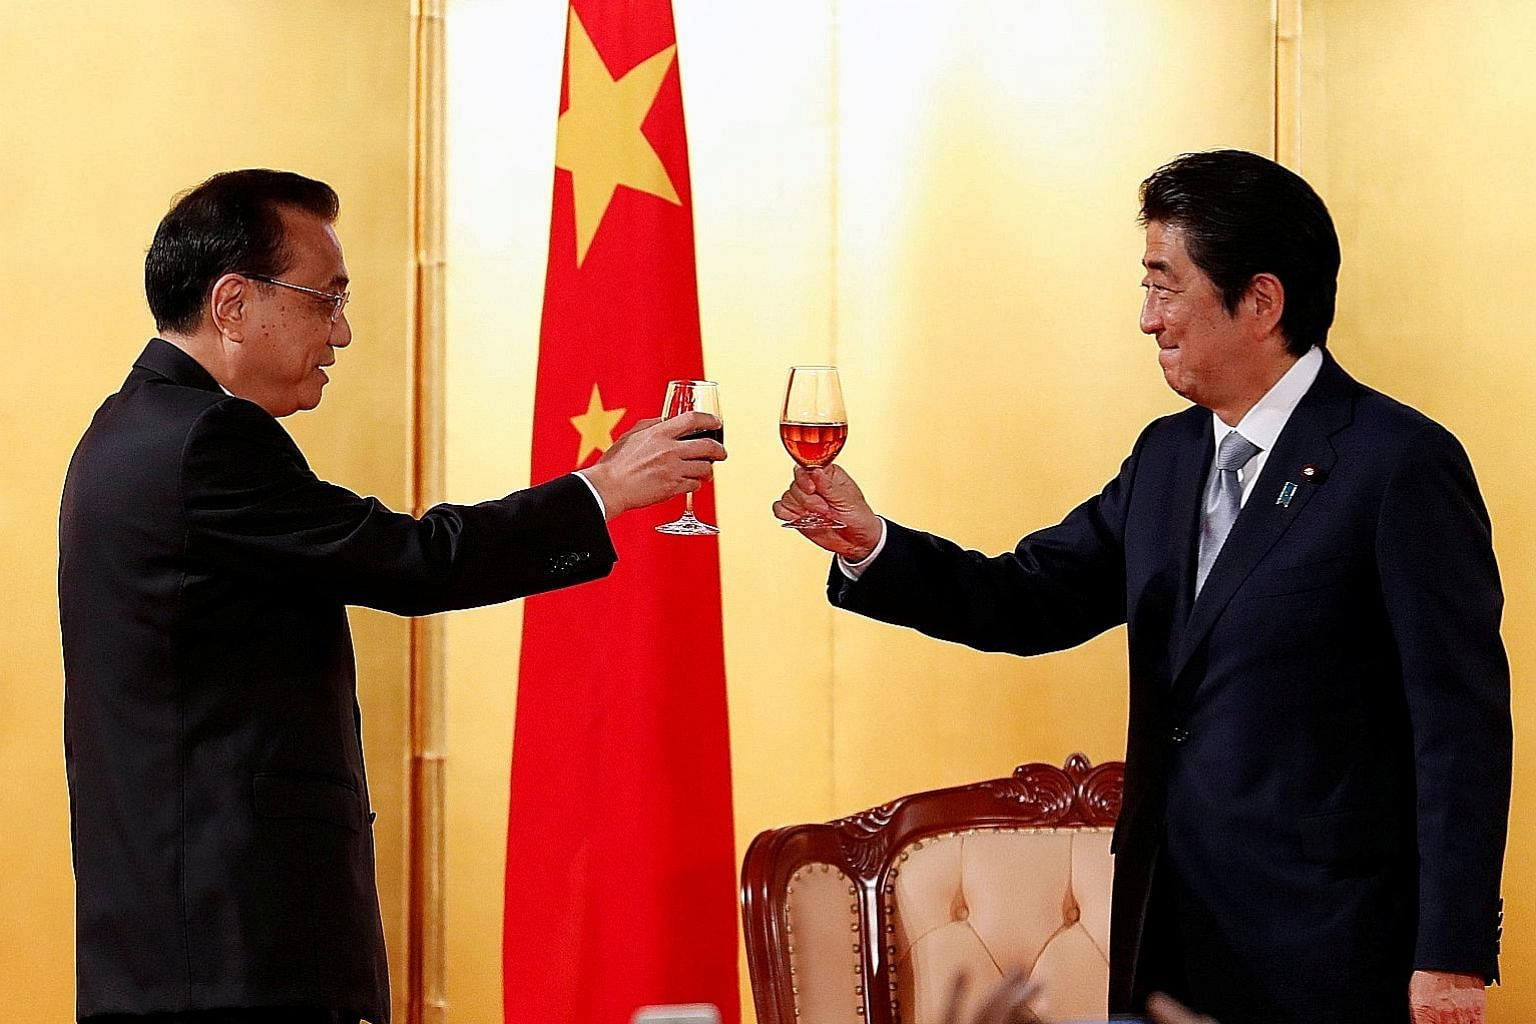 Chinese Premier Li Keqiang (left) and Japanese Prime Minister Shinzo Abe celebrating the 40th anniversary of a peace and friendship treaty between China and Japan during Mr Li's visit to Tokyo on May 10. Mr Li is the first Chinese leader to visit Jap